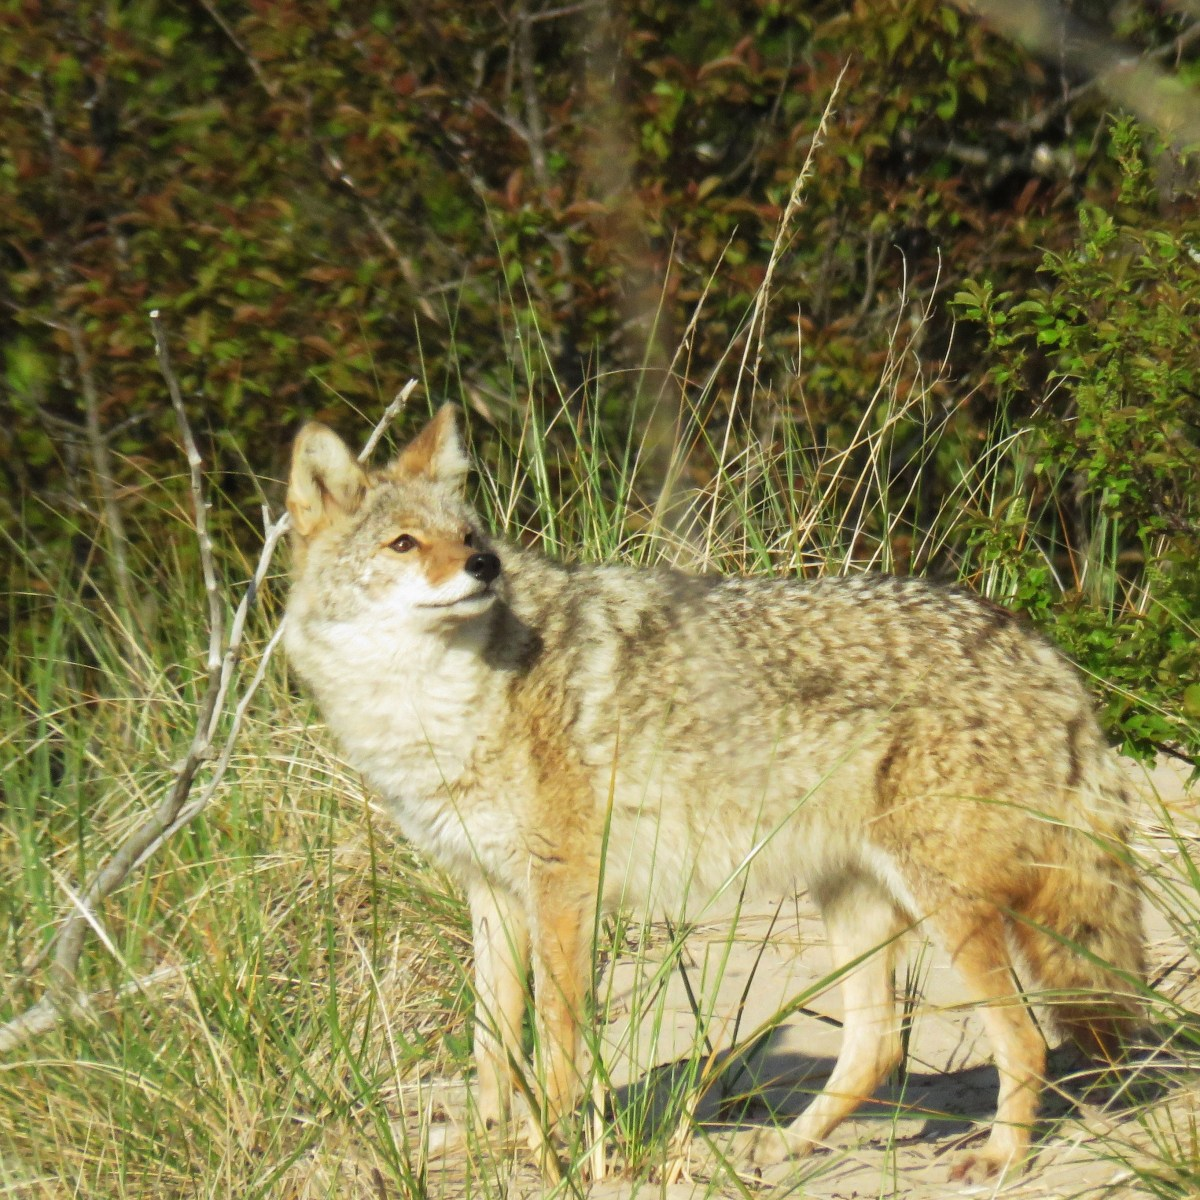 A coyote looking up